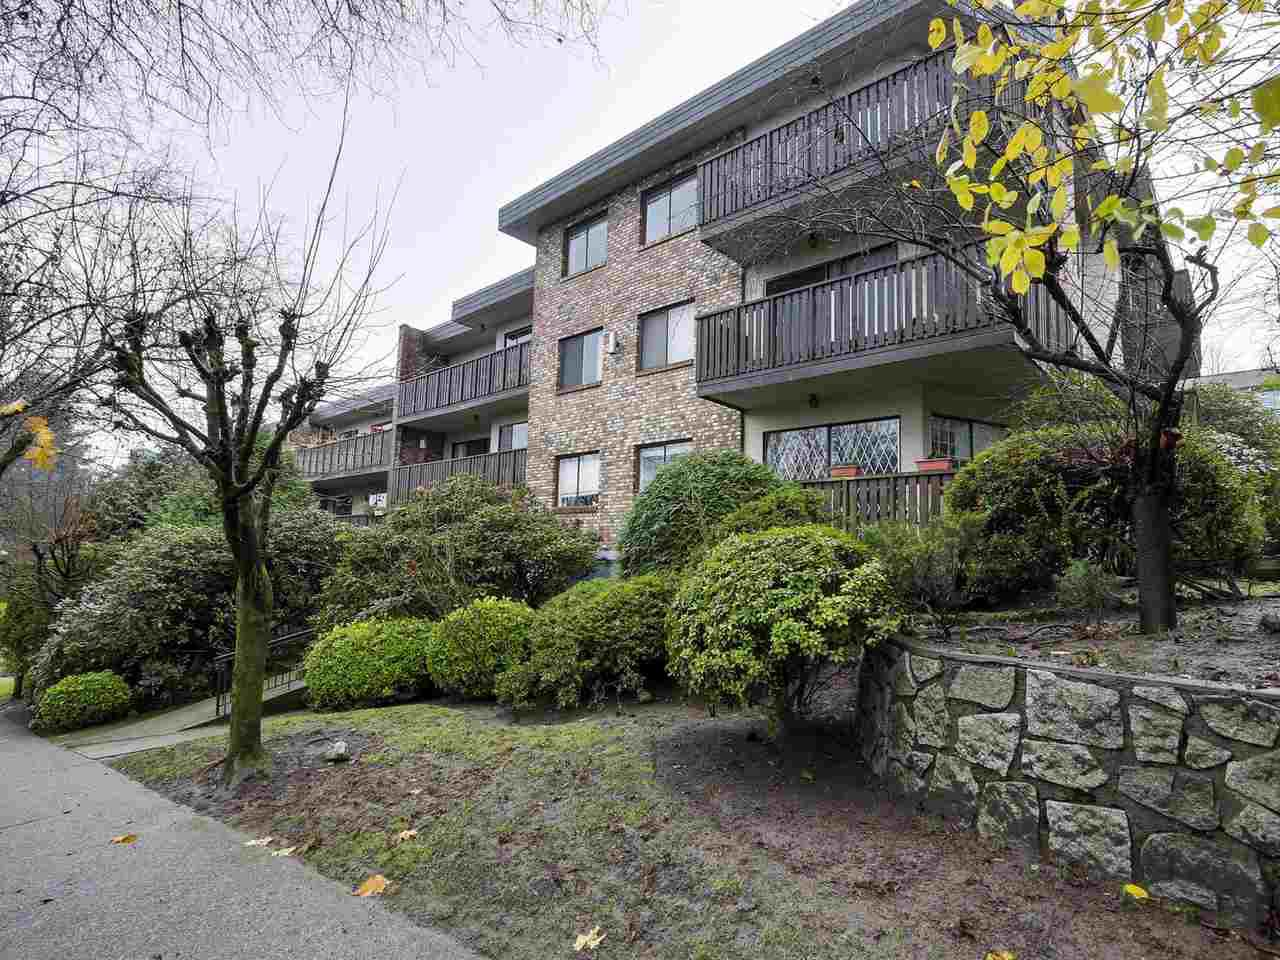 """Main Photo: 202 930 E 7TH Avenue in Vancouver: Mount Pleasant VE Condo for sale in """"WINDSOR PARK"""" (Vancouver East)  : MLS®# R2126516"""